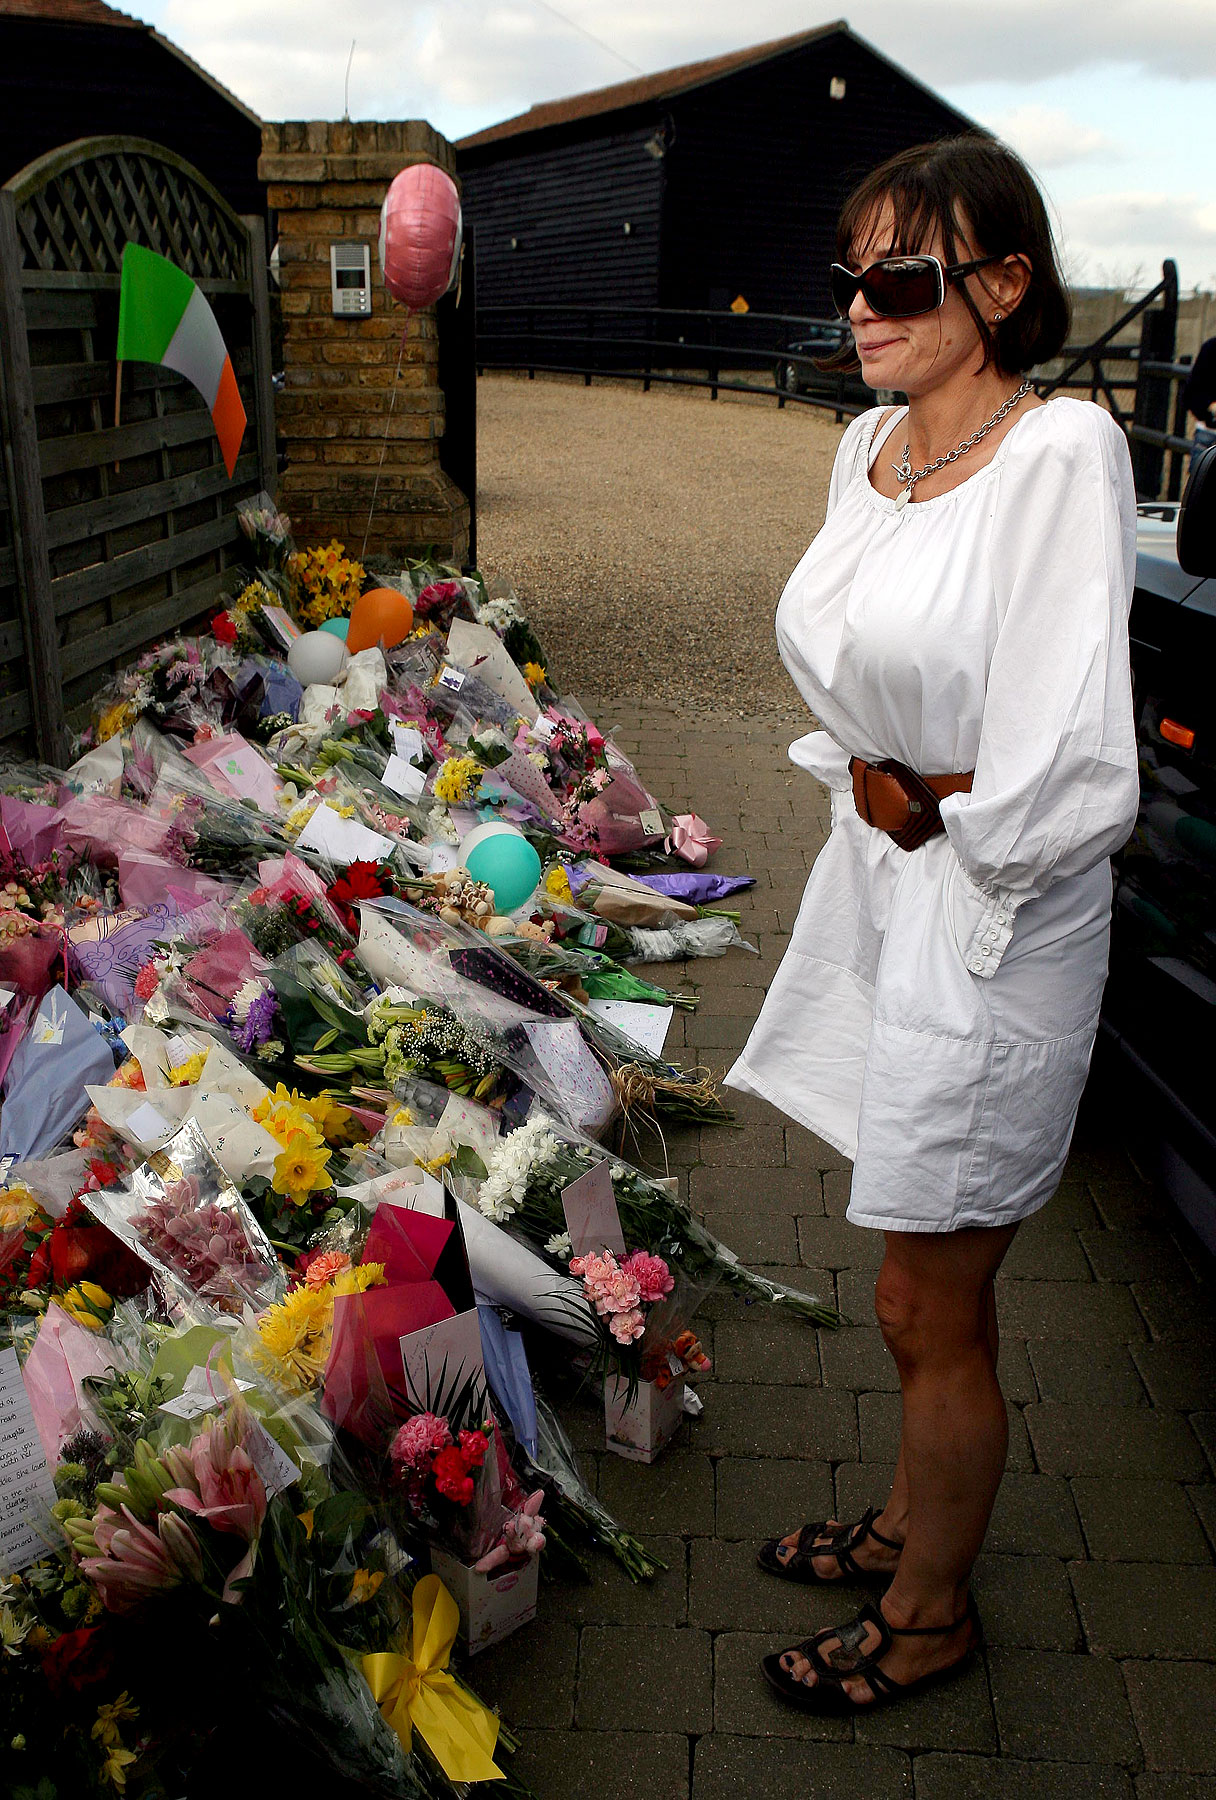 Jade Goody's Death: An Outpouring of Grief